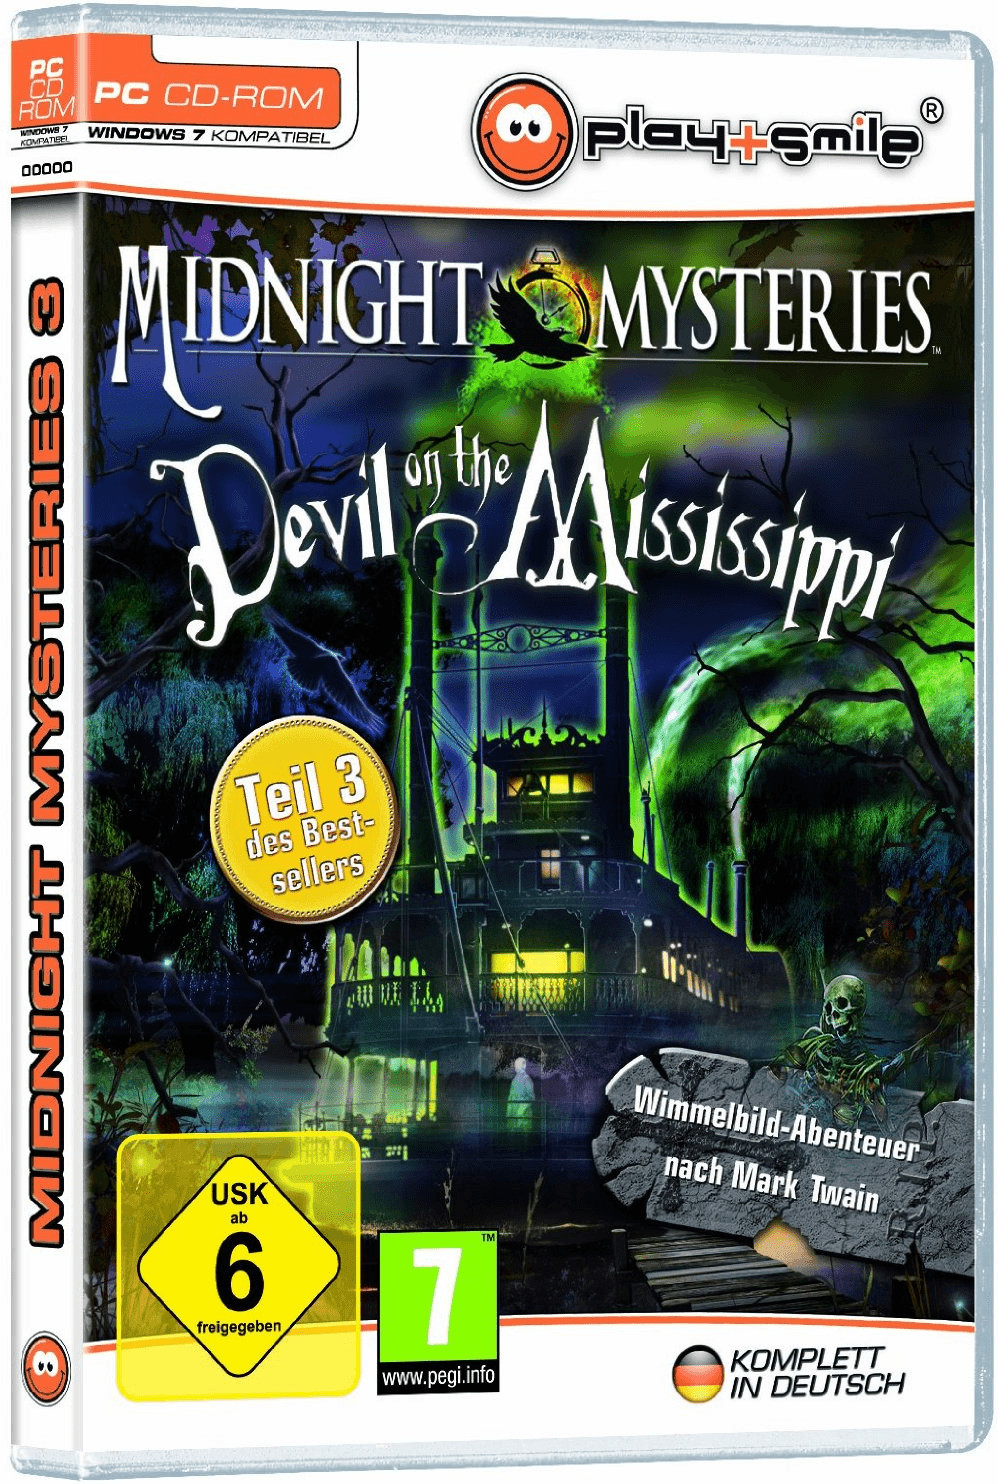 Midnight Mysteries: Devil on the Mississippi (PC)